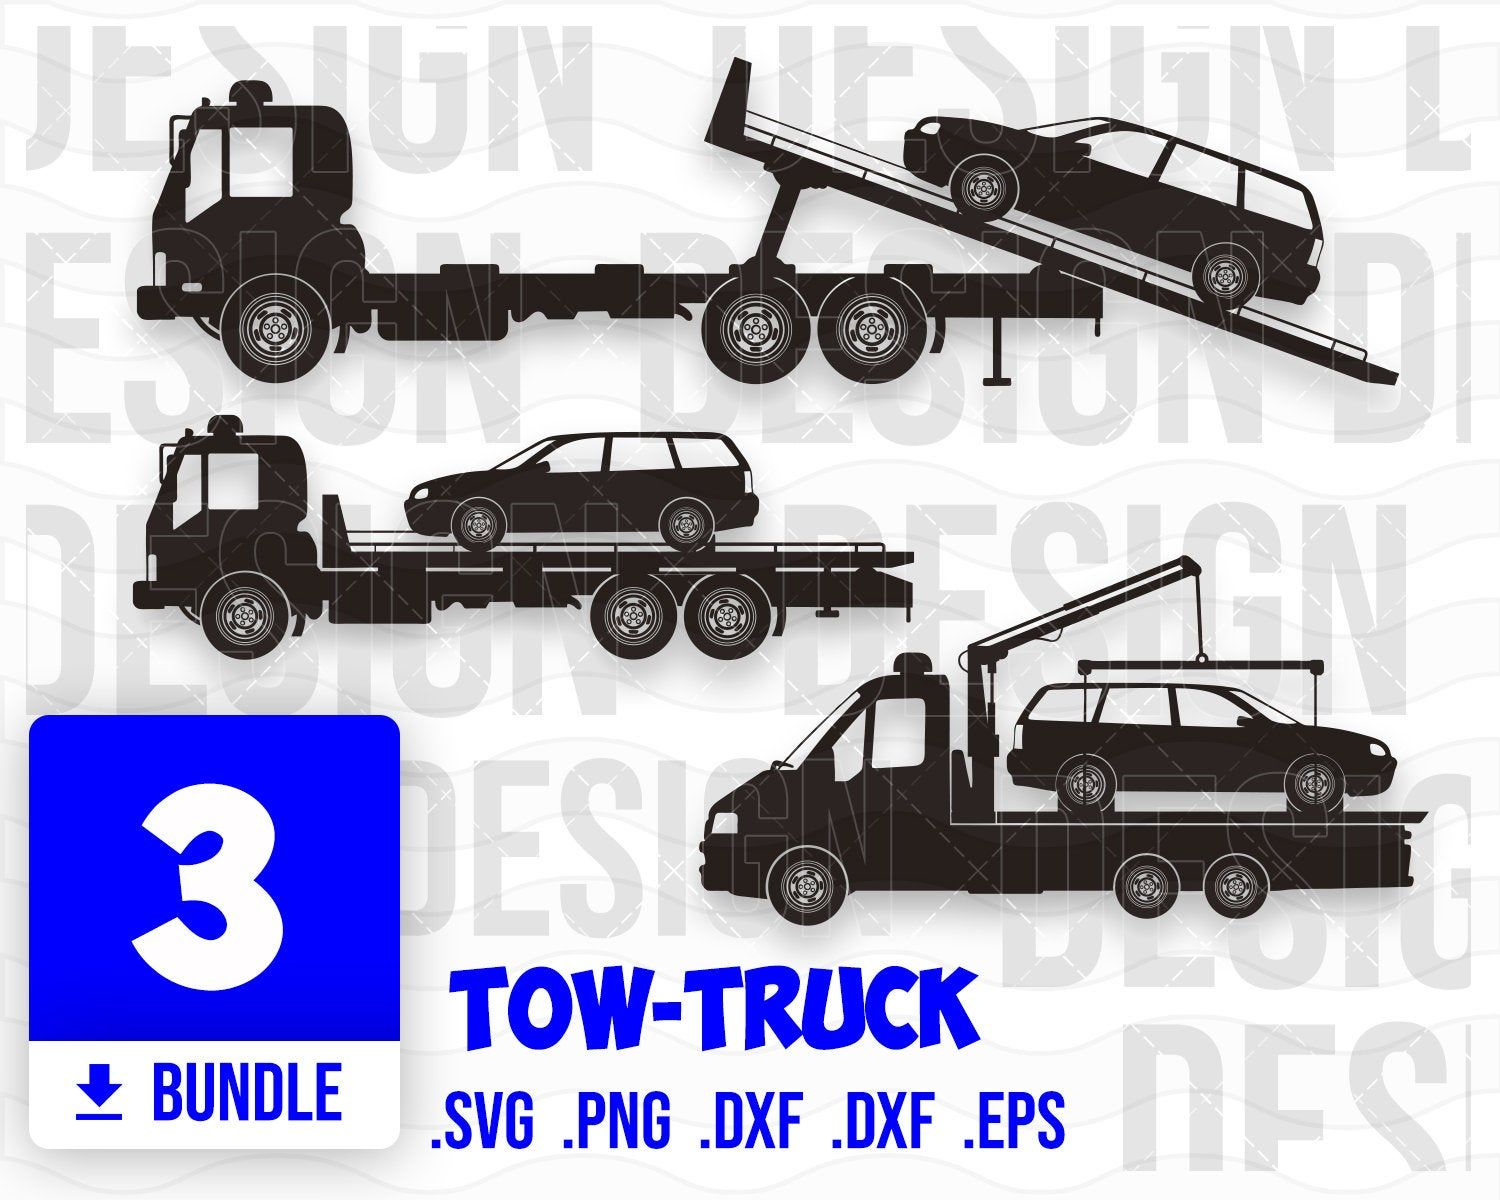 Tow Truck Svg Tow Truck Clipart Tow Truck Vector Tow Truck Cricut Towtruck Silhouette Tow Truck Print Tow Truck Design Trucks Print Svg Truck Design